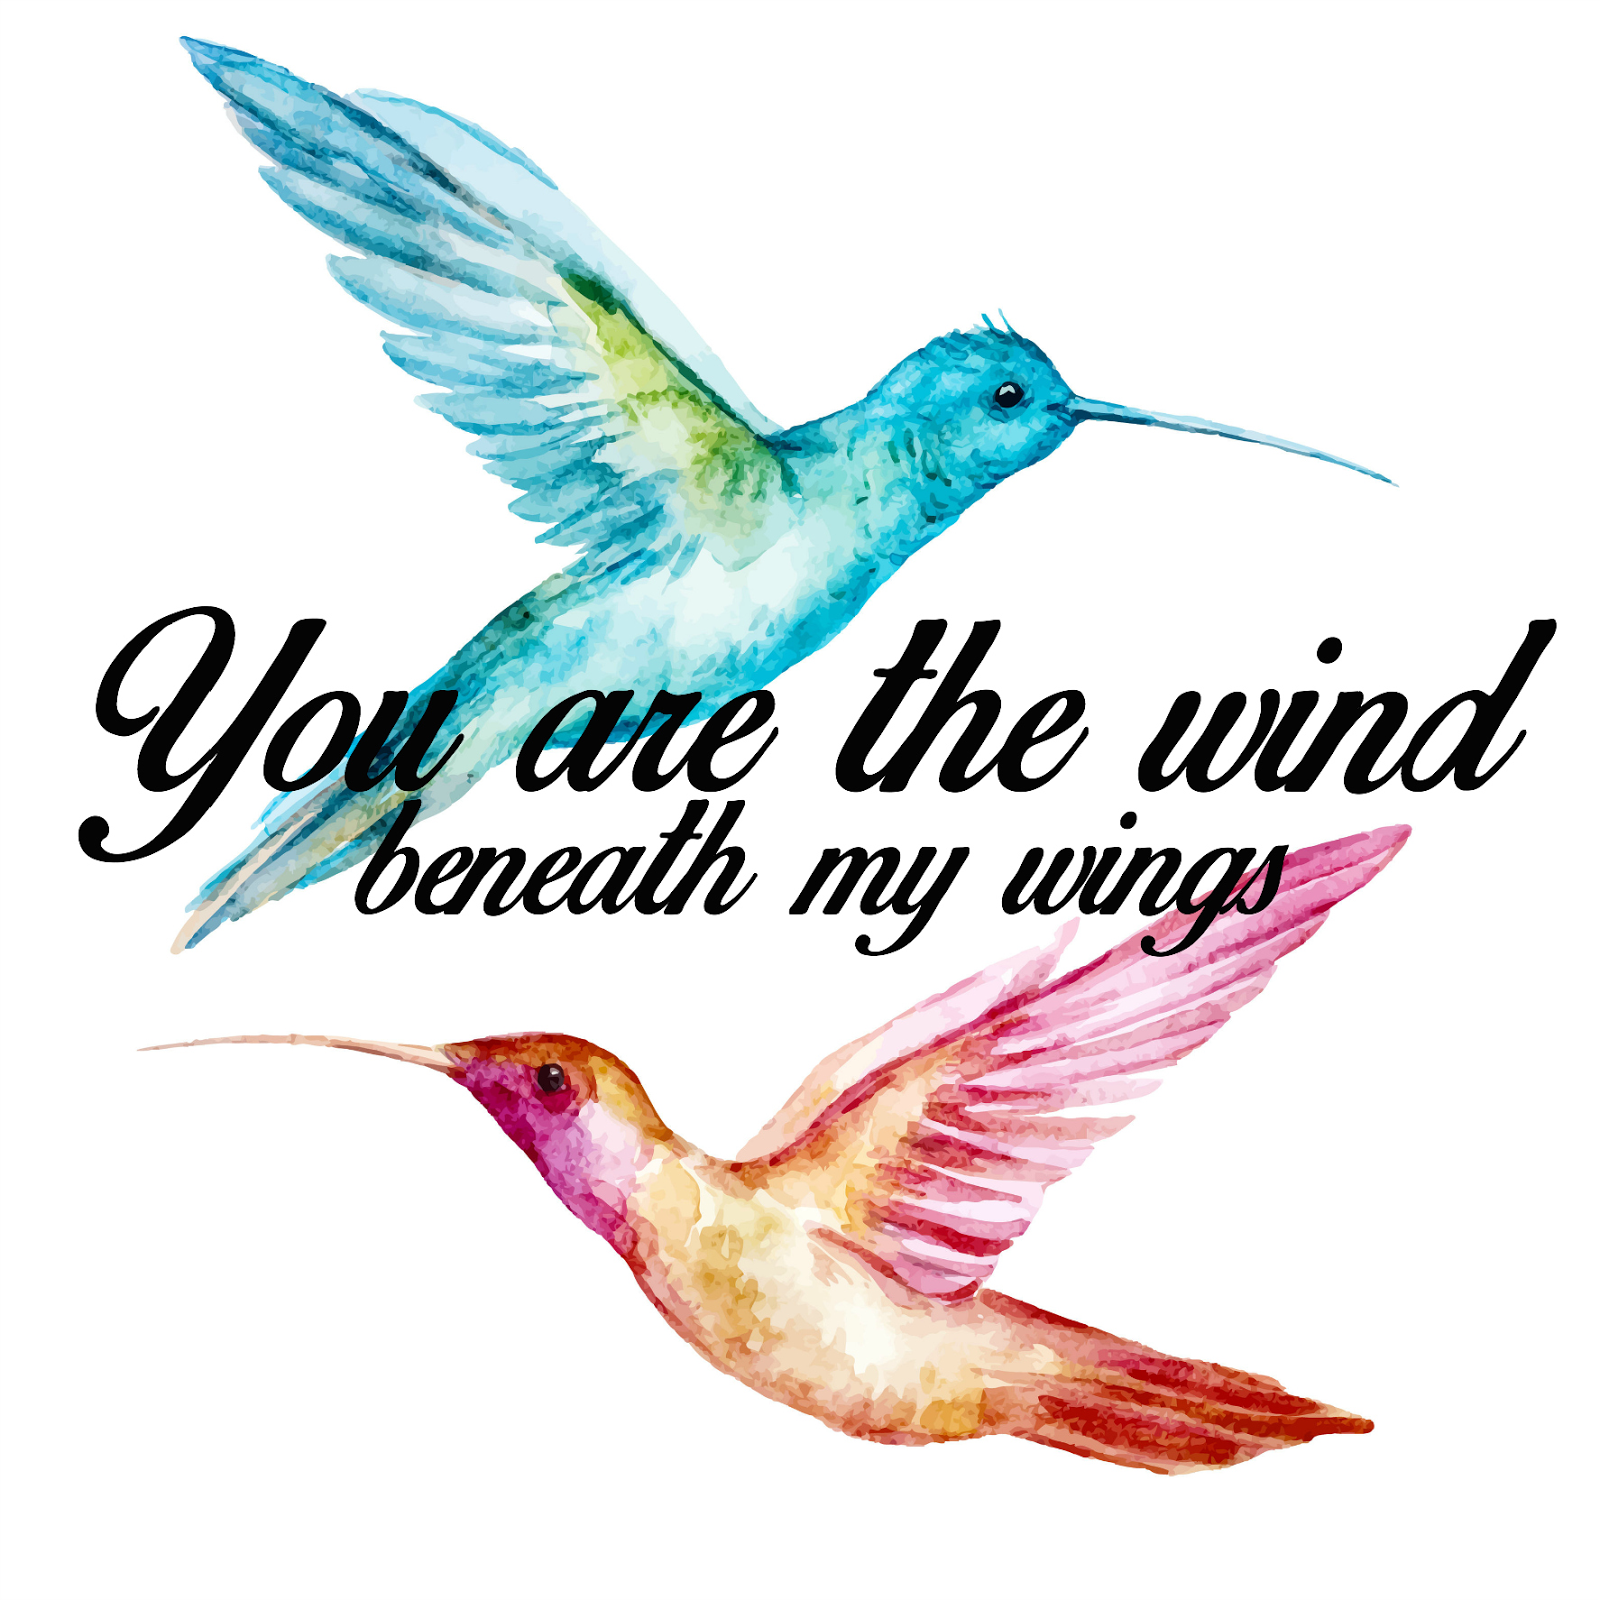 Bette Midler In Phoenix You Are The Wind Beneath My Wings Download Our Mini Family